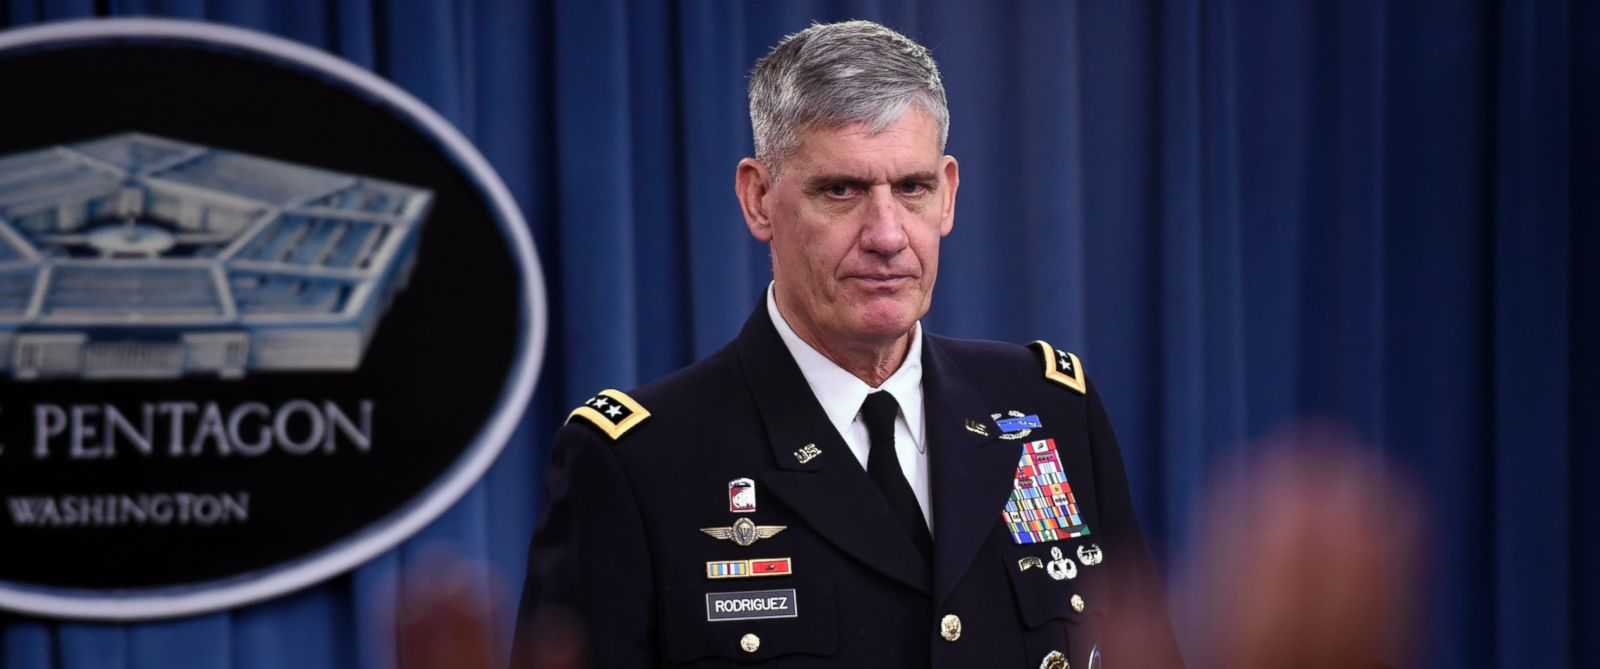 PHOTO: US Africa Commander Gen. David Rodriguez listens during a news conference at the Pentagon, Tuesday, Oct. 7, 2014, to discuss the US military response to the Ebola crisis in West Africa.